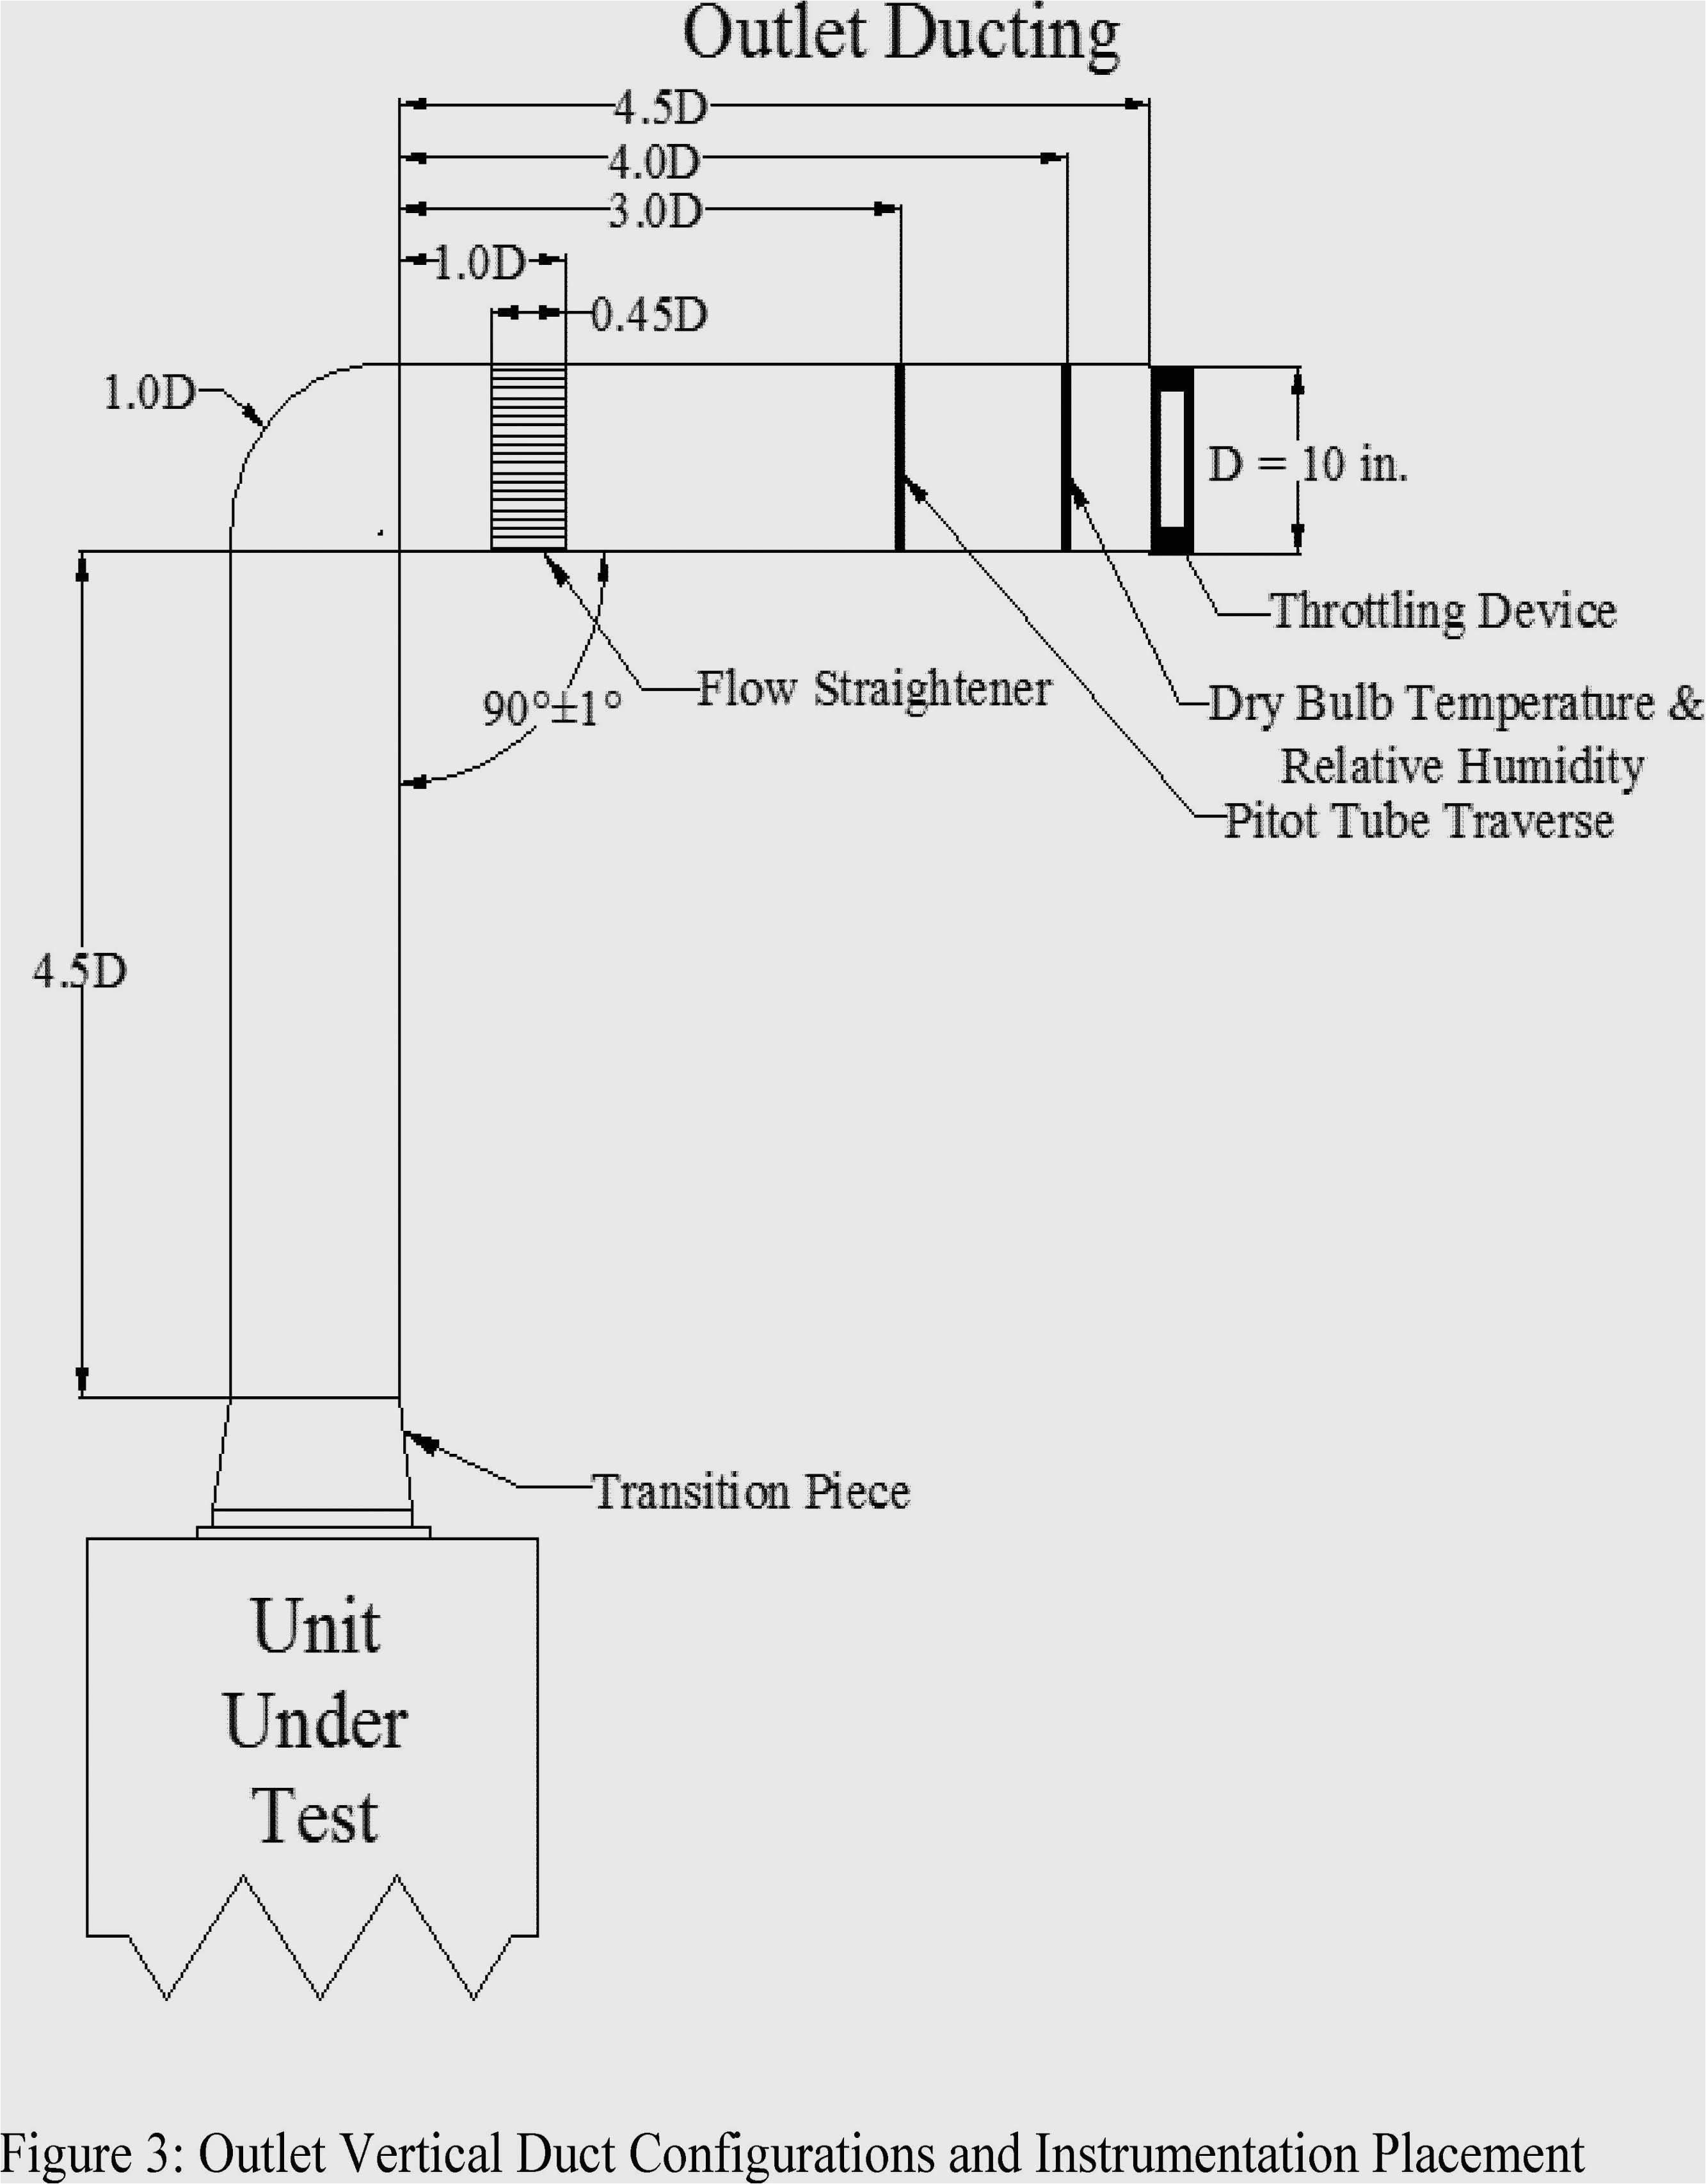 Wiring Diagram for 3 Way Light Switch Wiring Diagram 3 Way Switch Inspirational 3 Way Switch Wiring